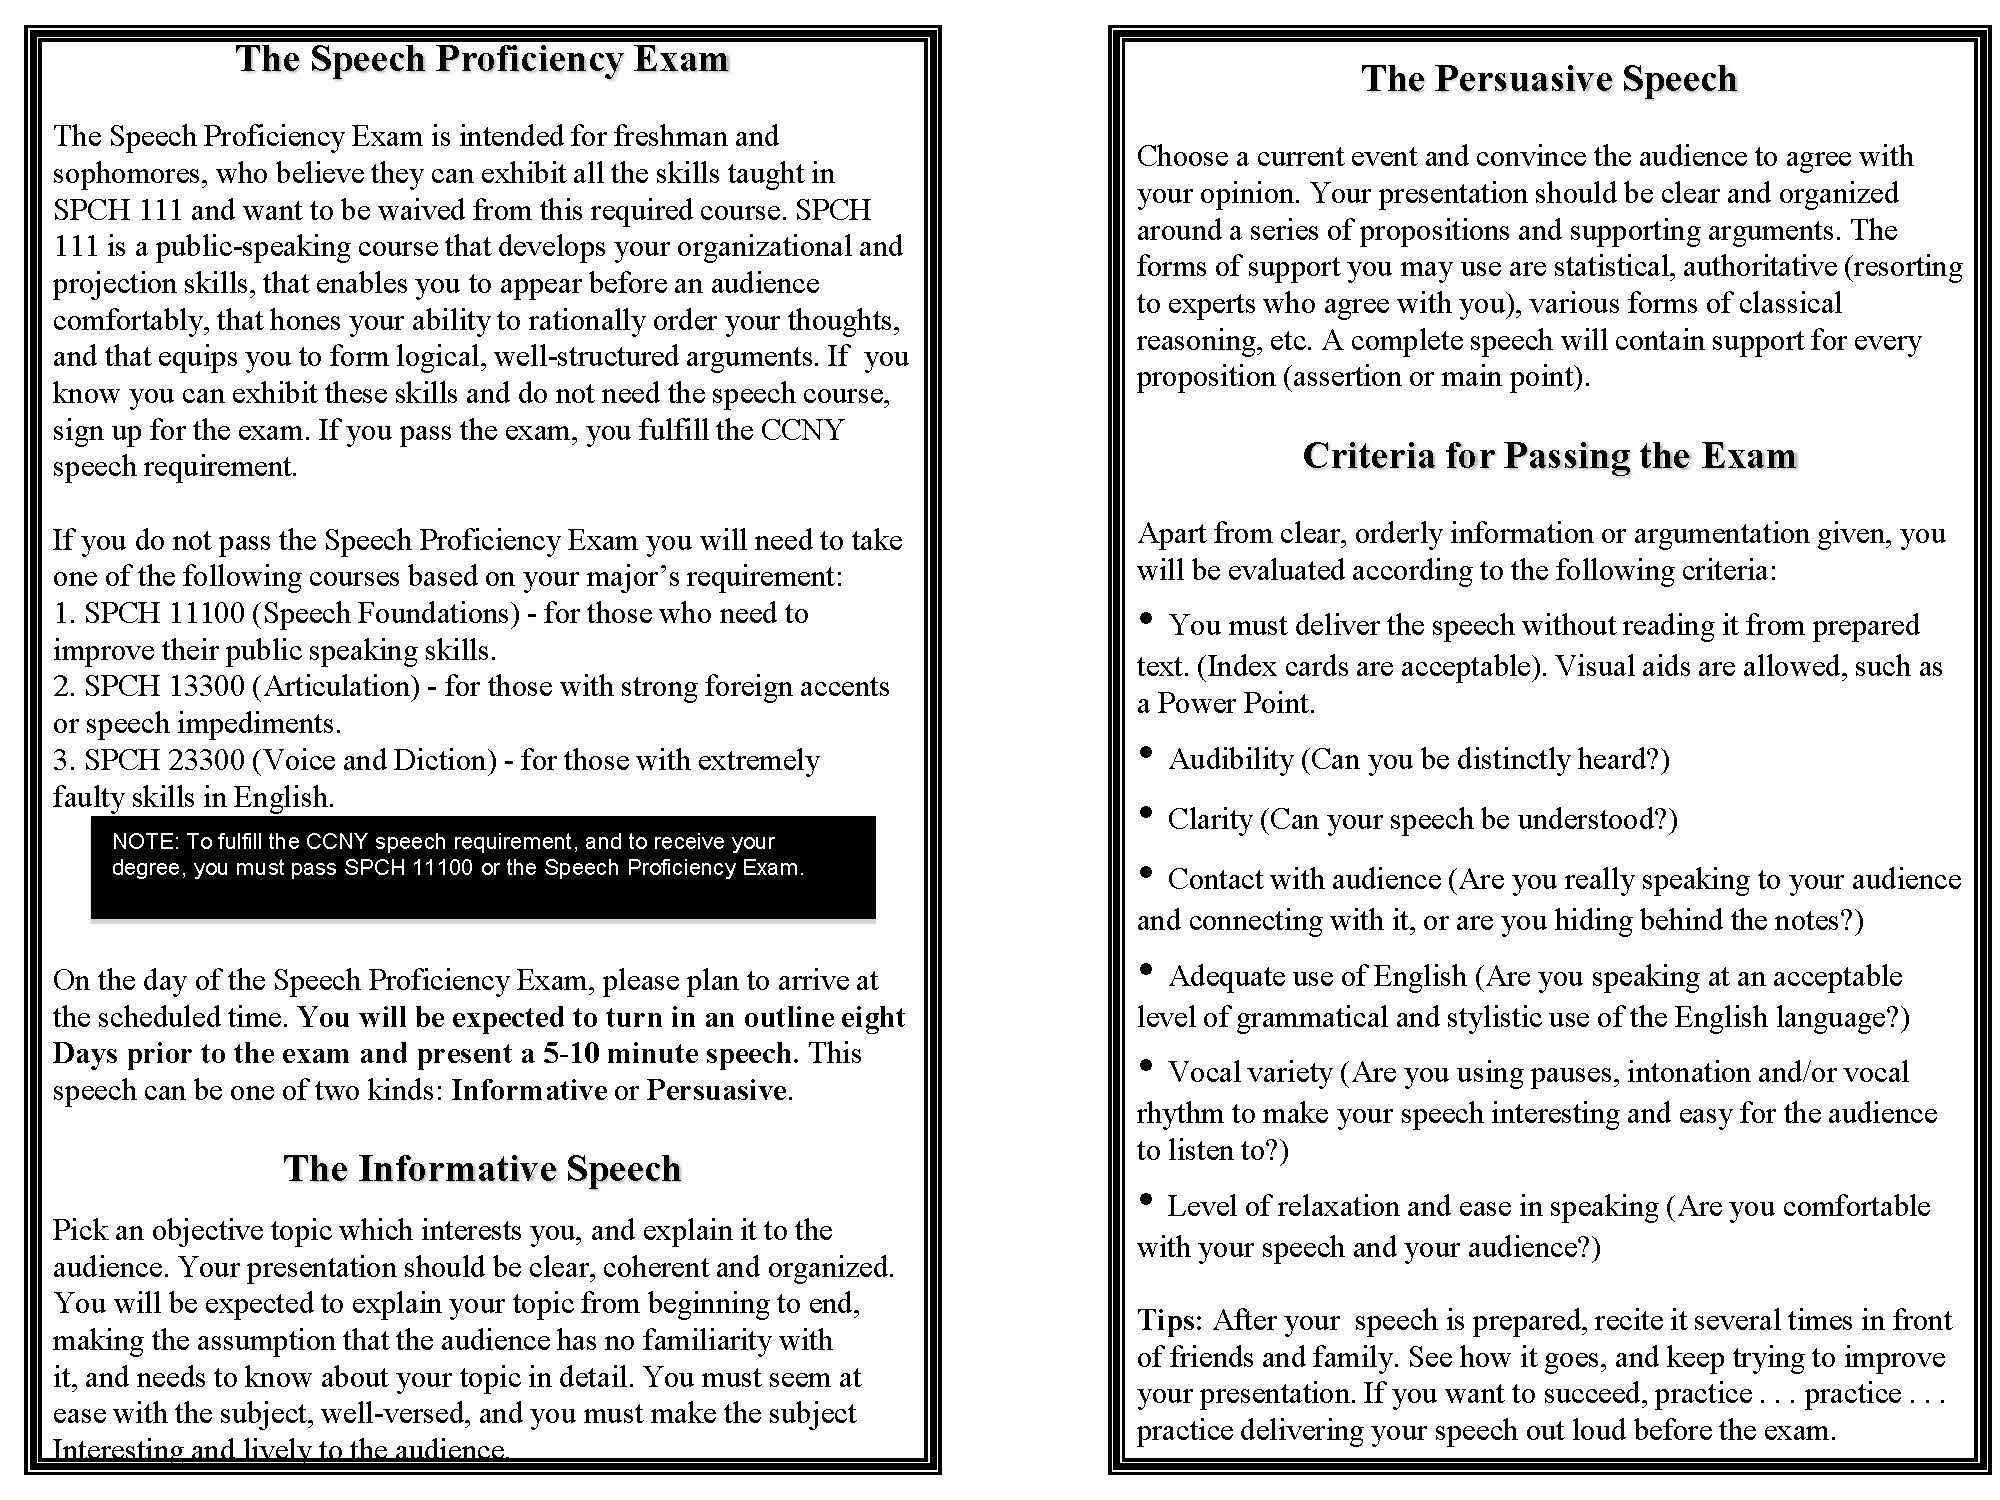 Speech Exam page 2